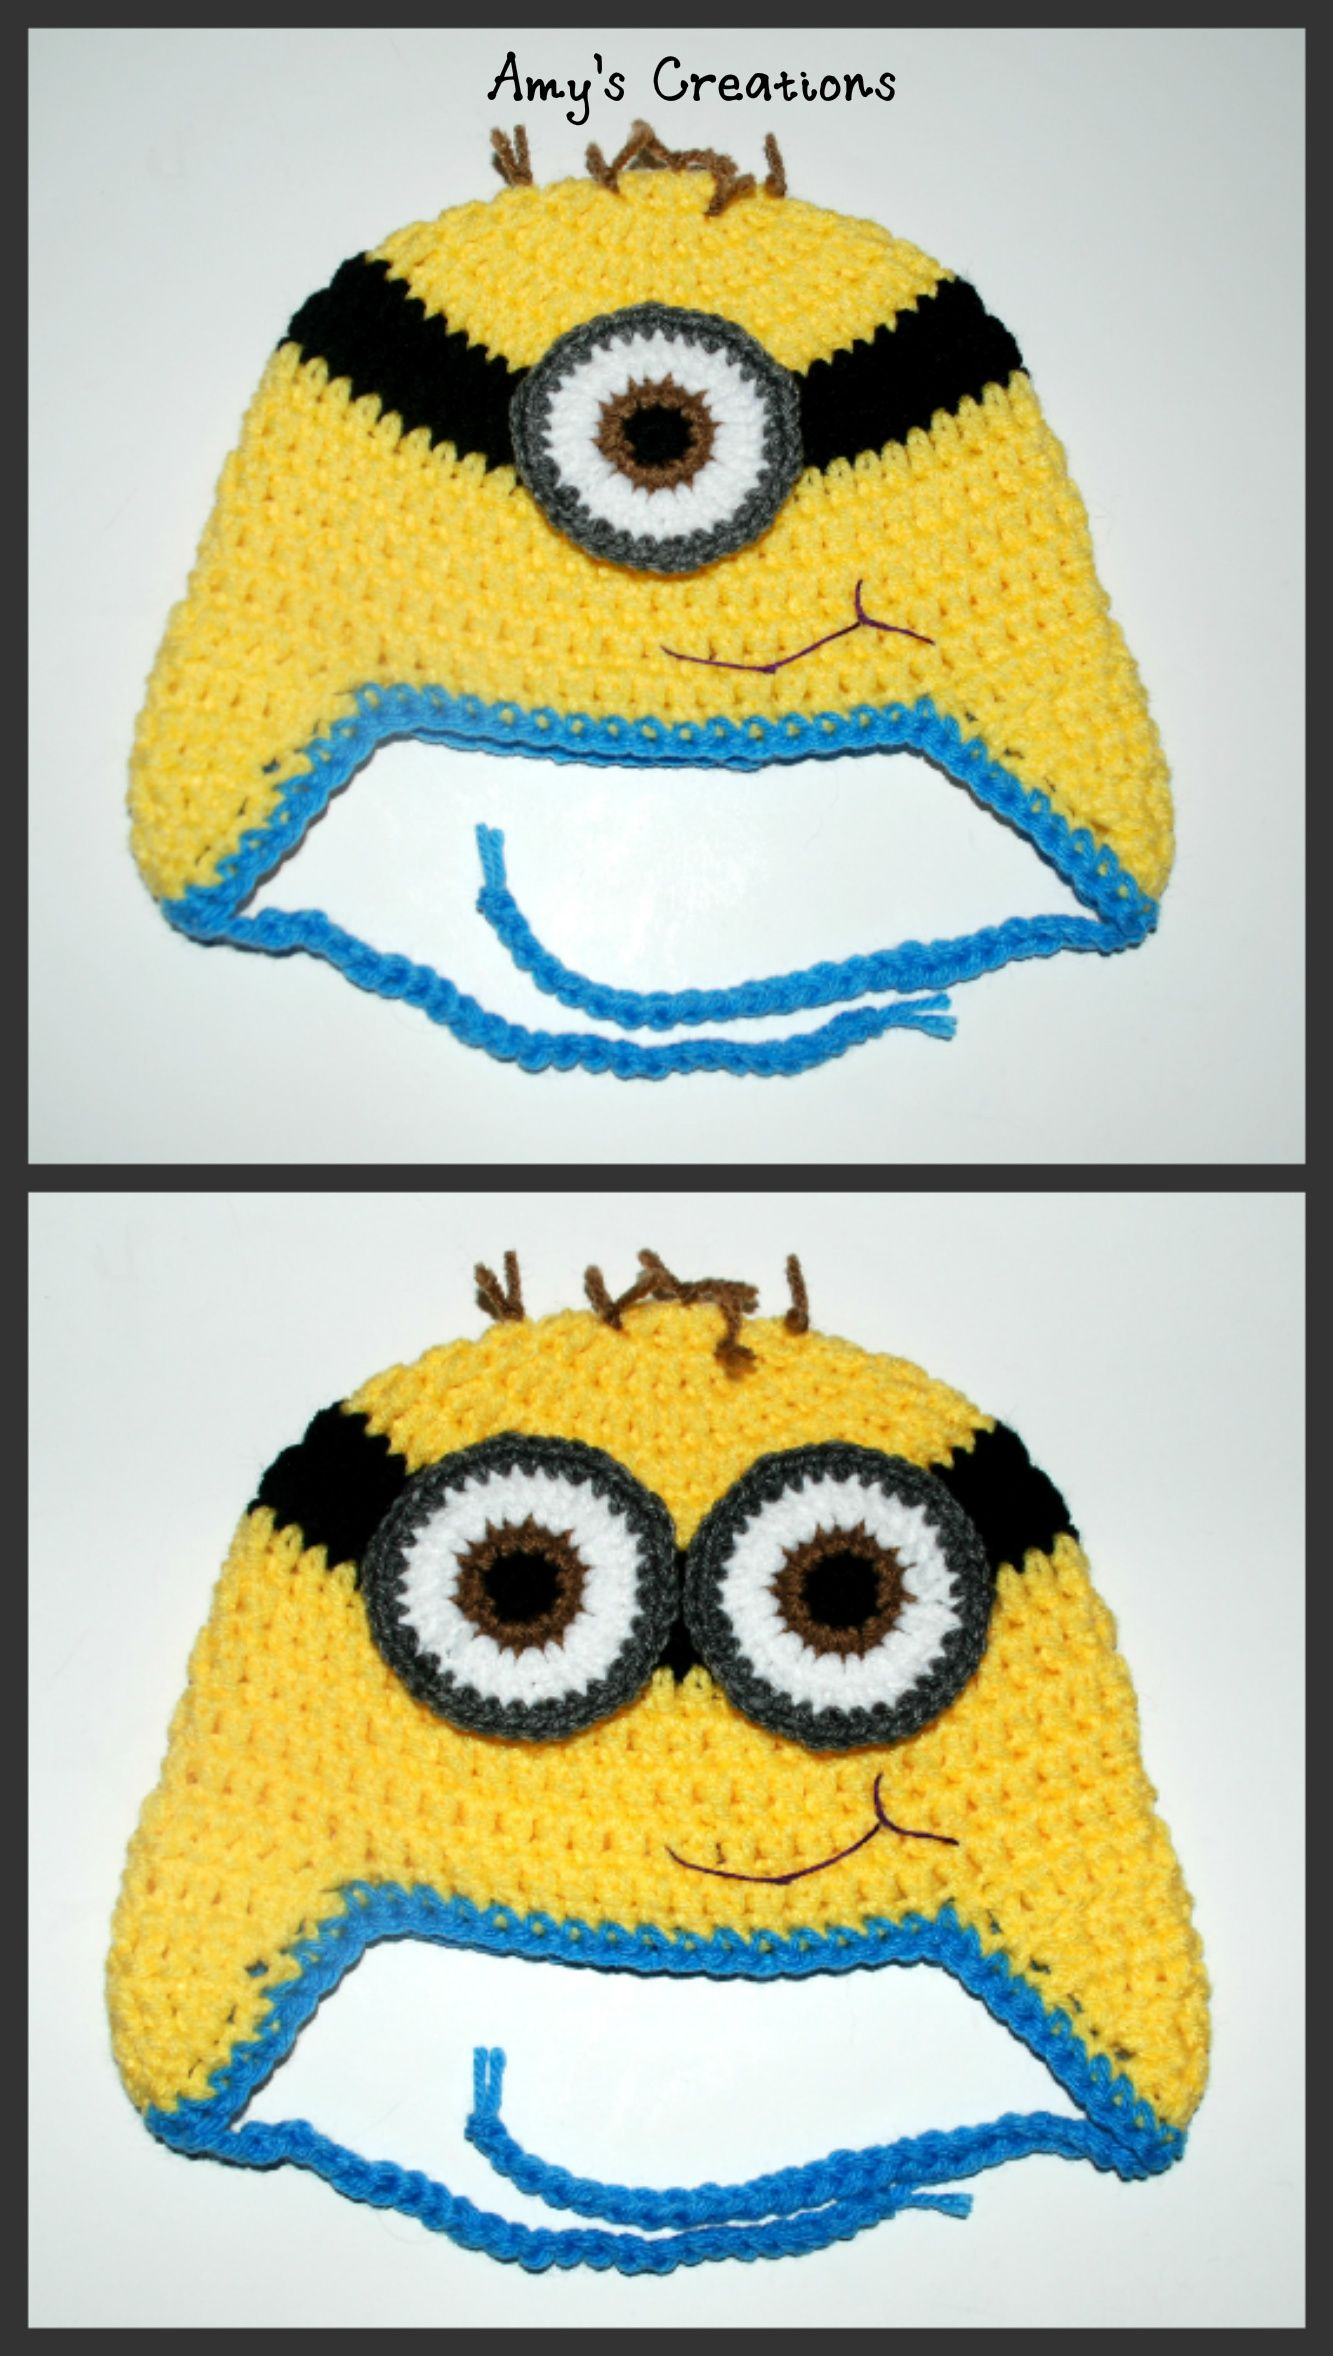 minionhats.jpg 1,333×2,356 pixels | Knit hats | Pinterest | Knitted ...